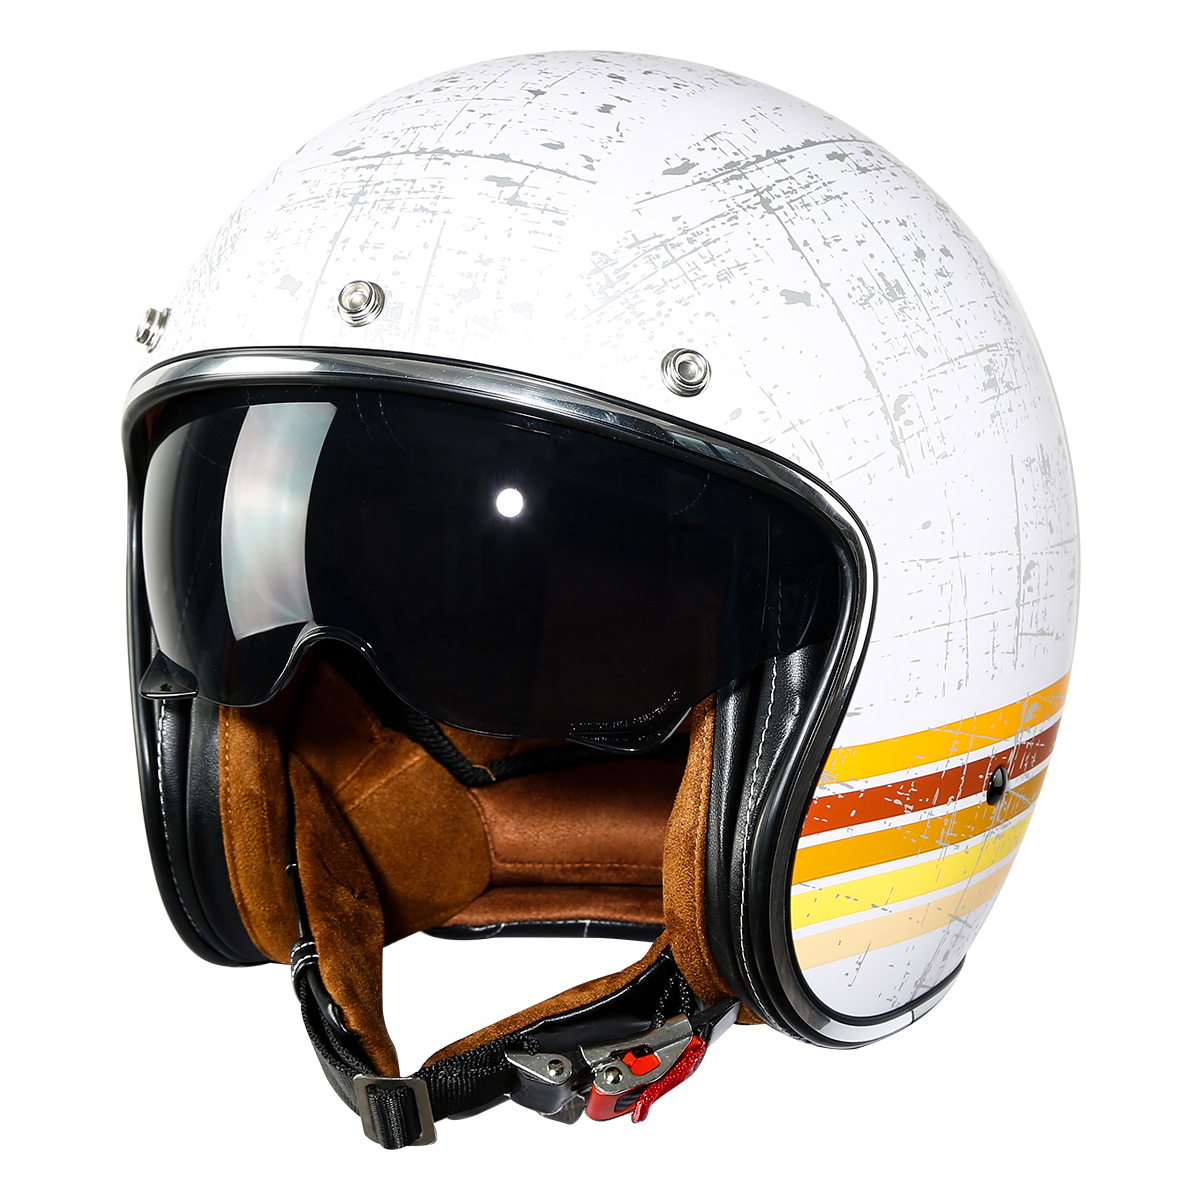 Tcmt 3 4 Open Face Motorcycle Scooter Helmet With Sun Visor Retro Style Cafe Racer Dot White M Size Walmart Com Walmart Com